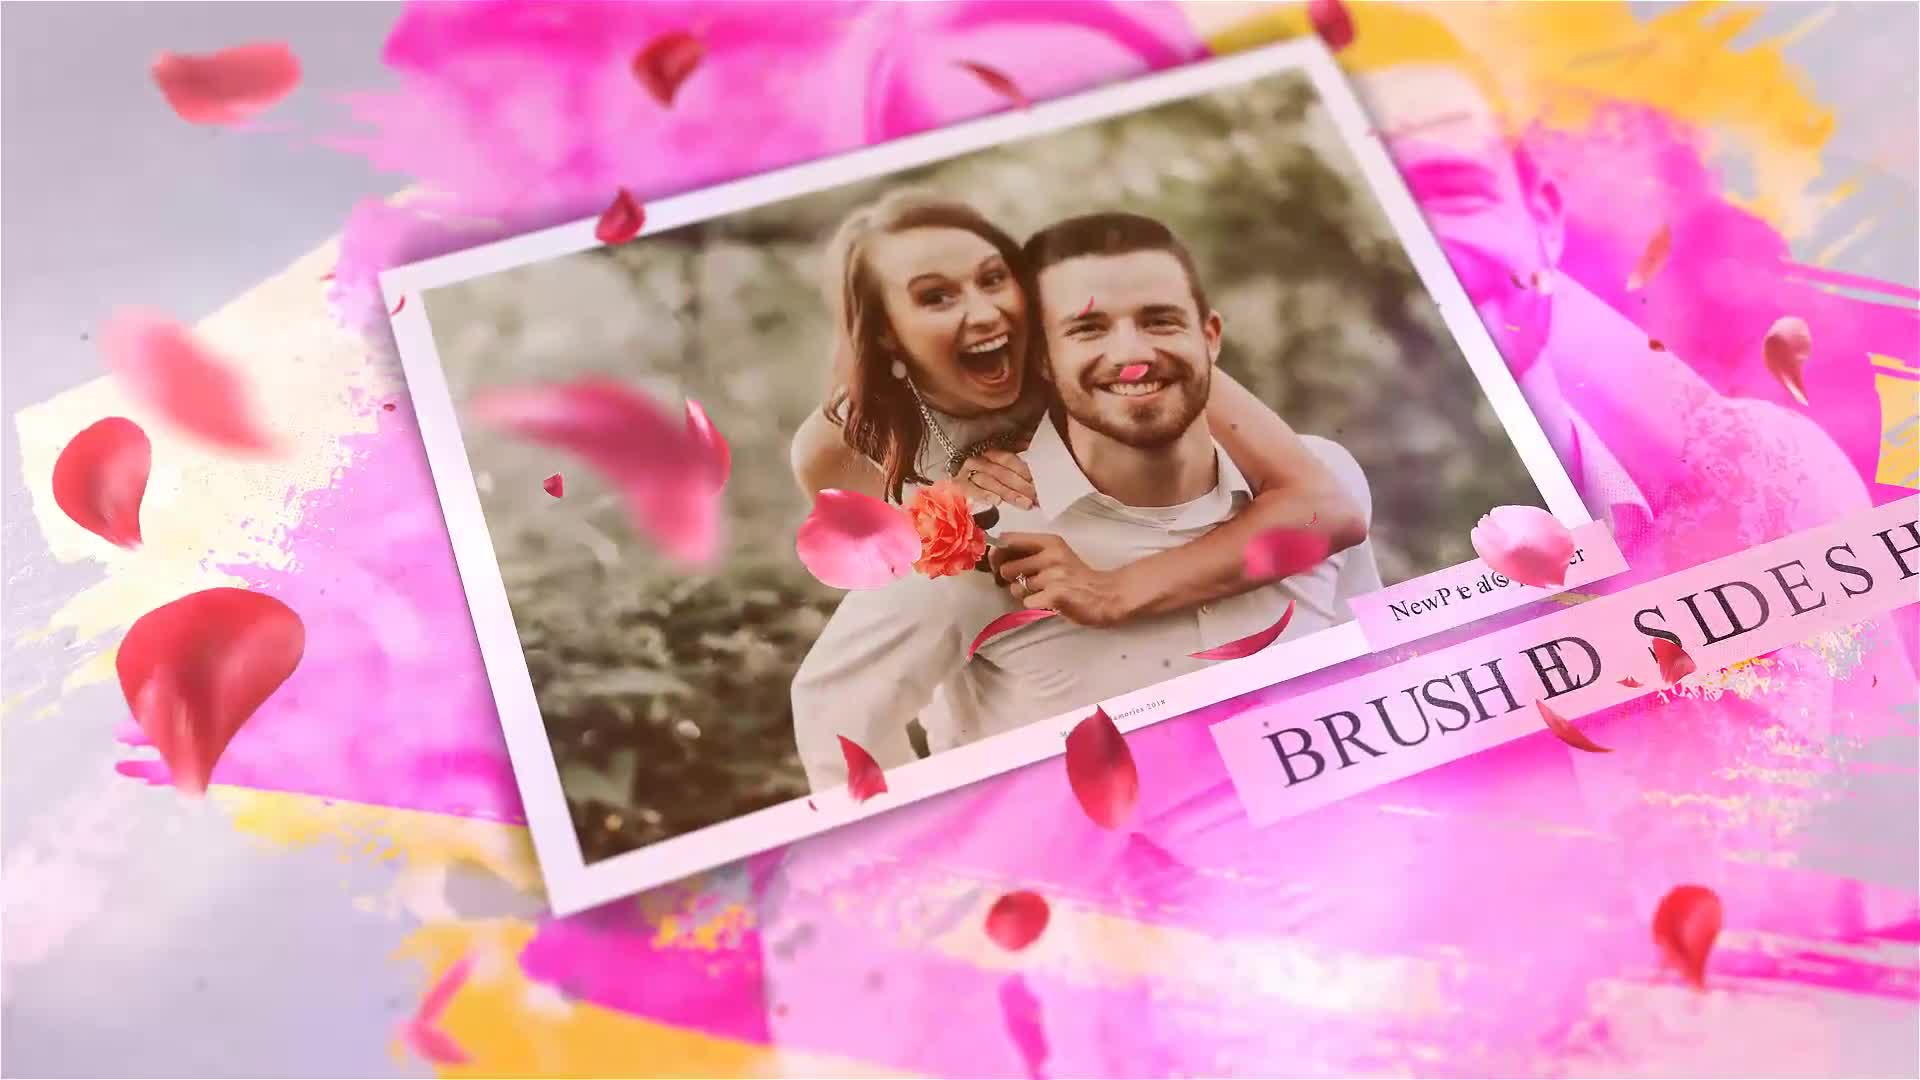 Brushed Petals Slideshow - Download Videohive 22549430